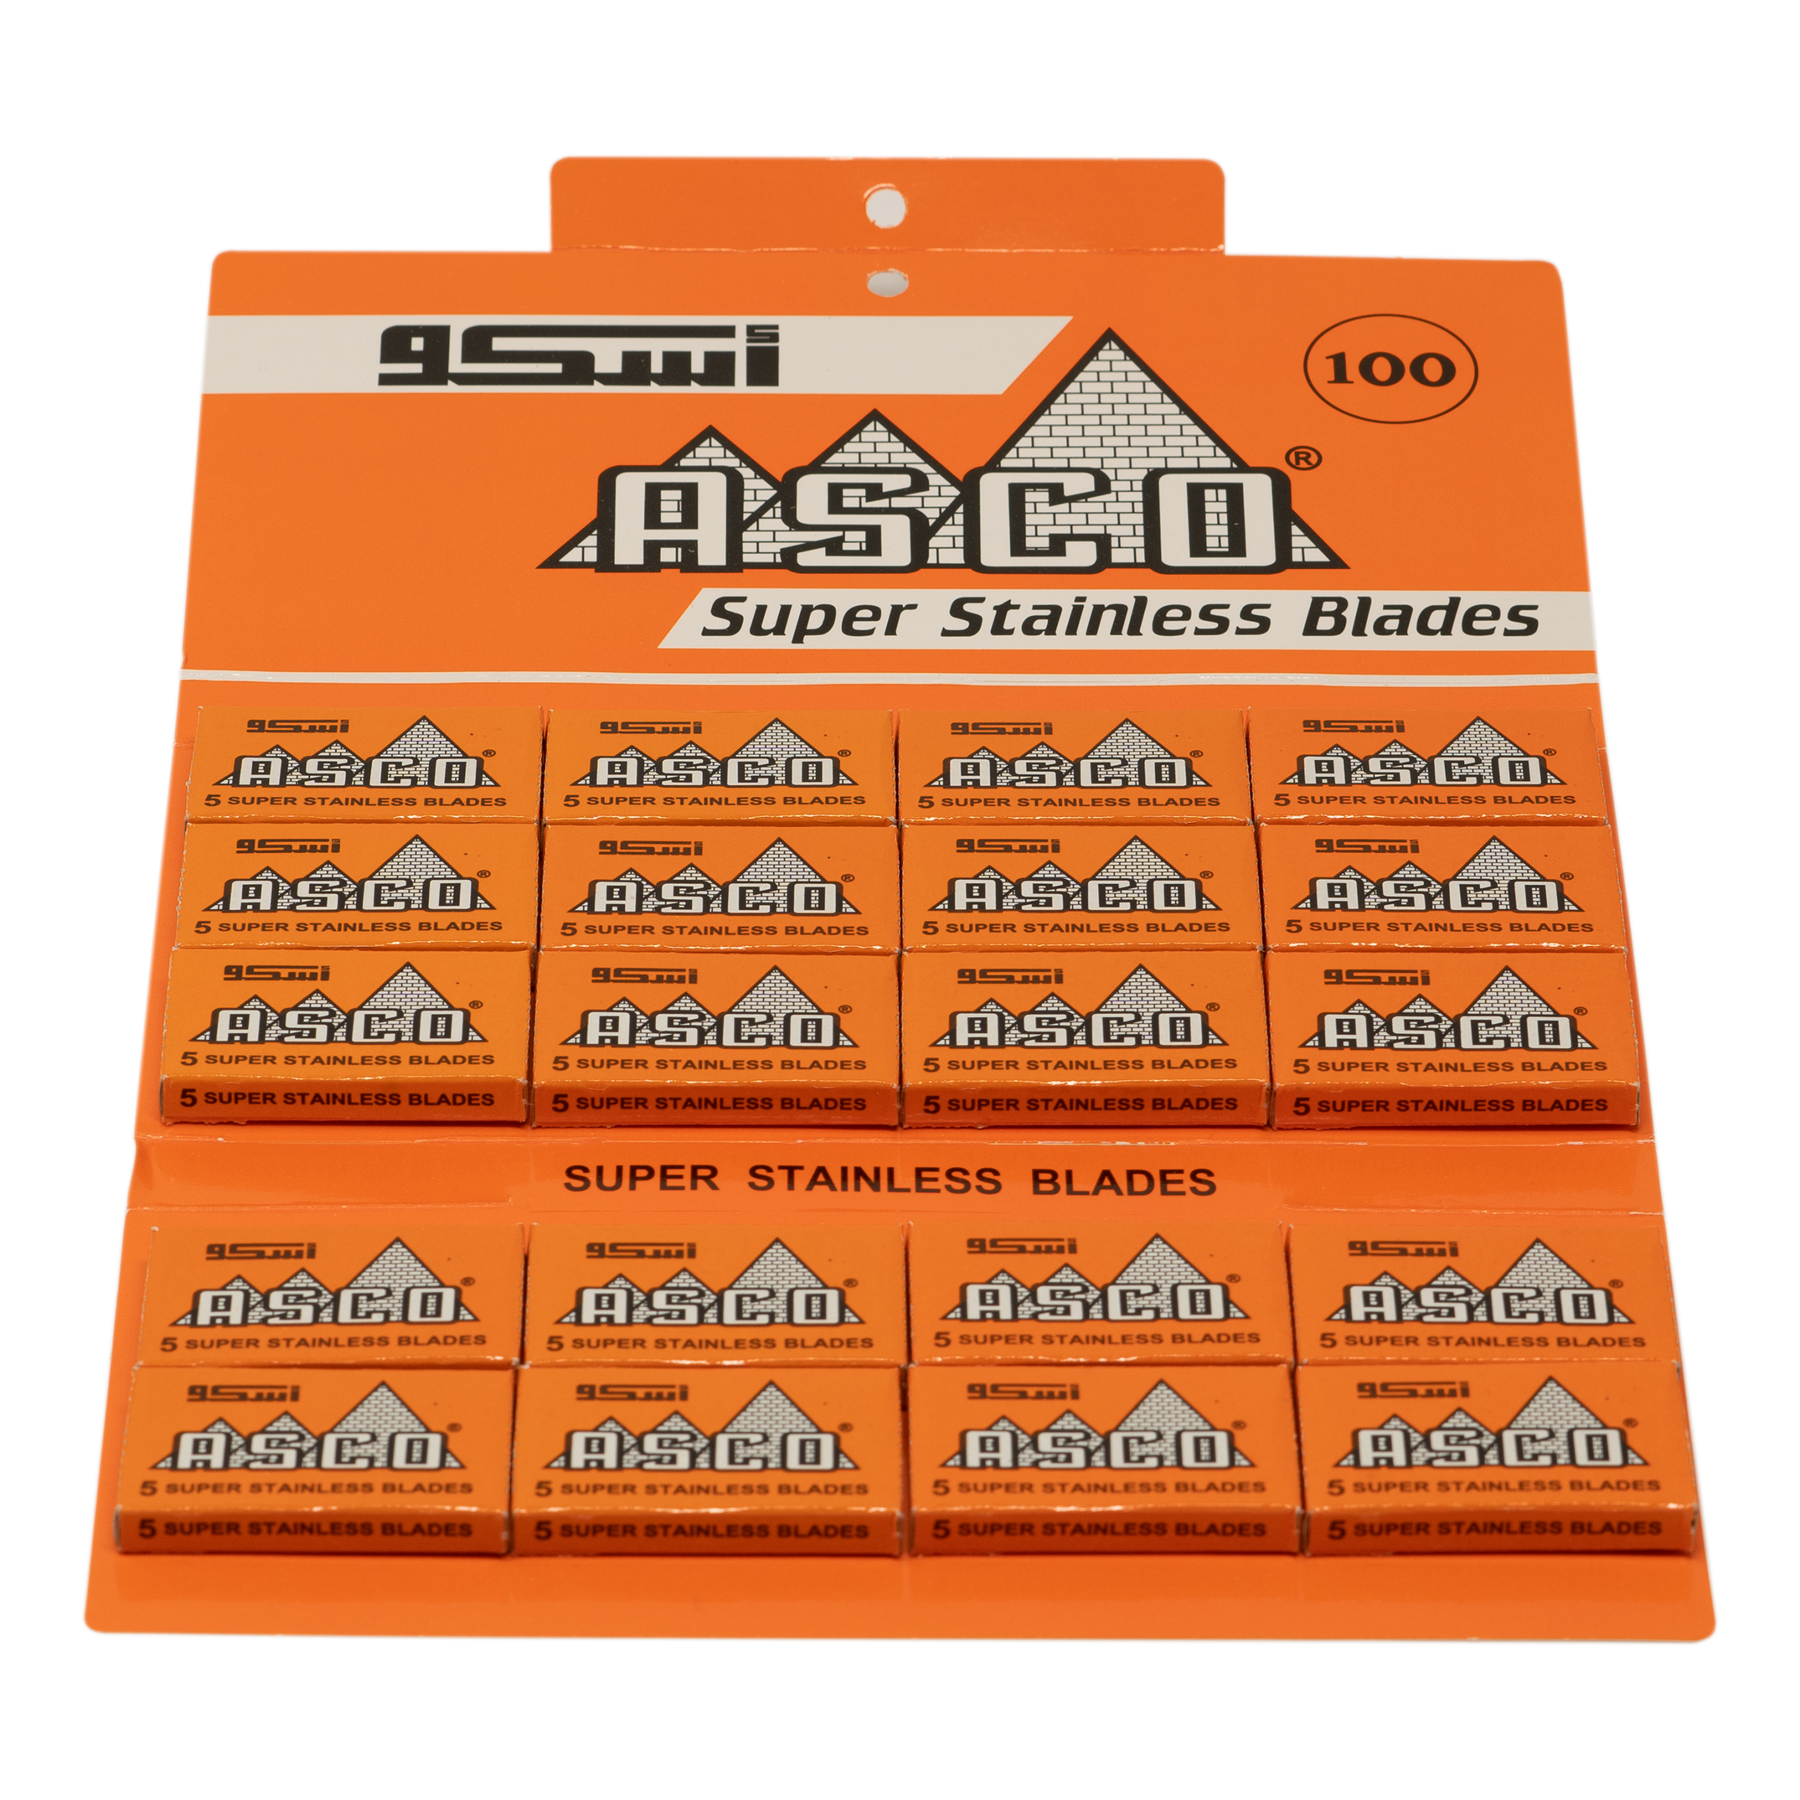 Asco Super Stainless Double Edge Razor Blade (Pack of 100 Blades)